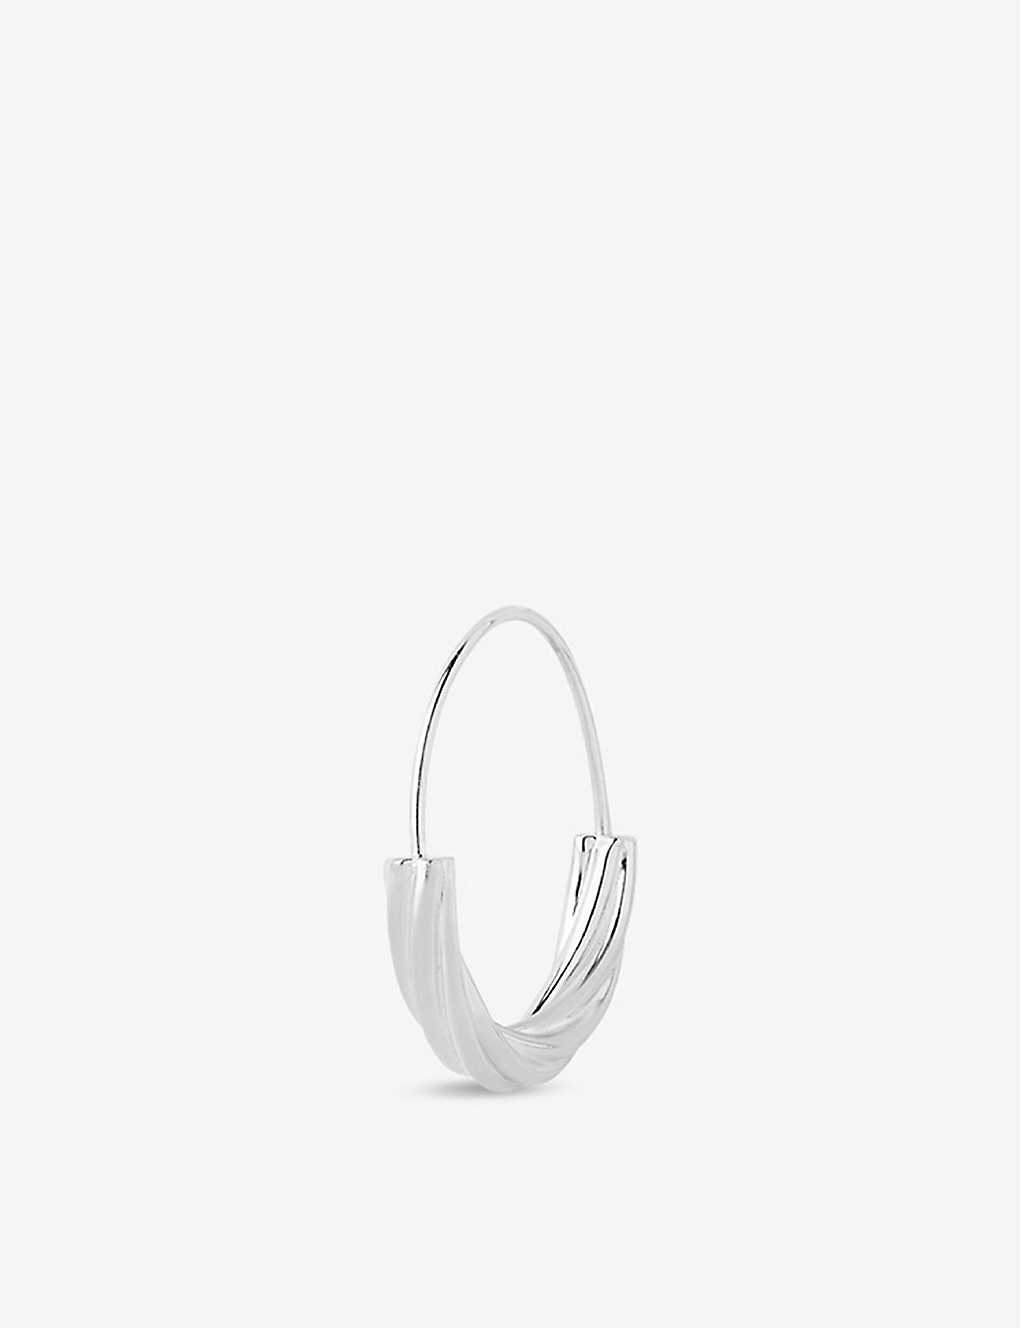 MARIA BLACK: Tove sterling silver small hoop earring